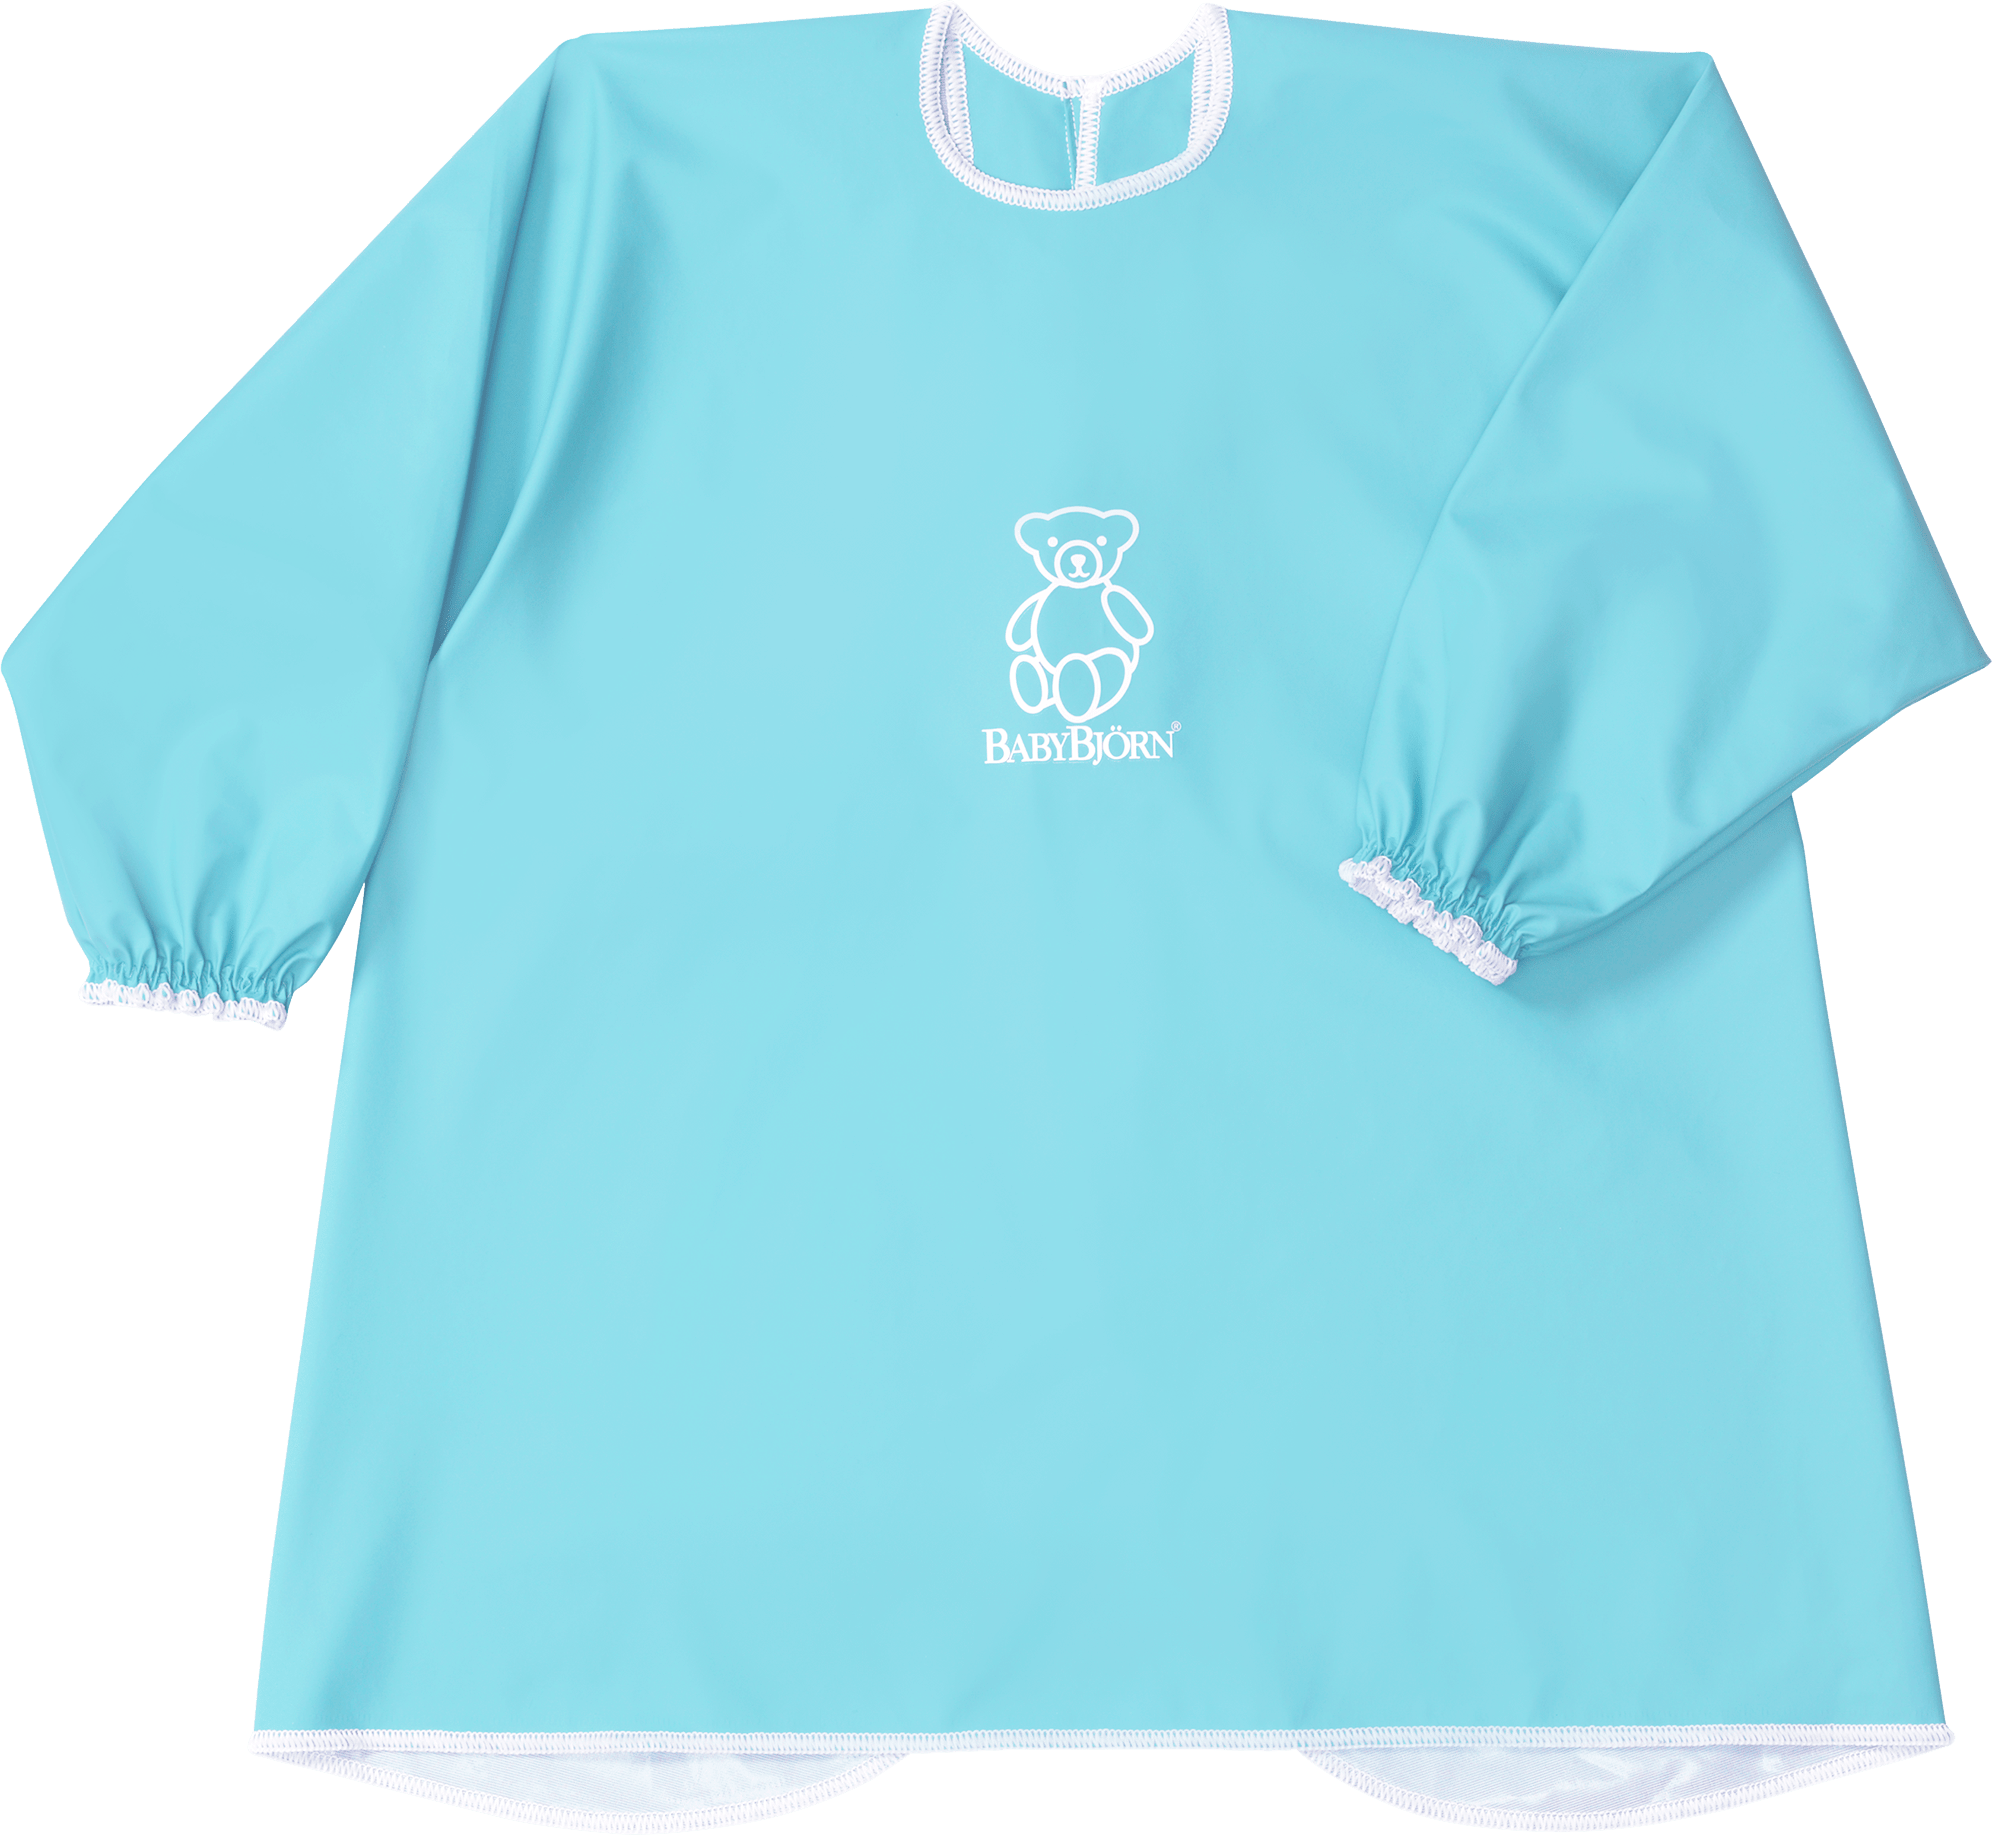 BABYBJÖRN Long Sleeve Bib in turquoise BPA-free plastic, bib and apron in one, covers both front and back.